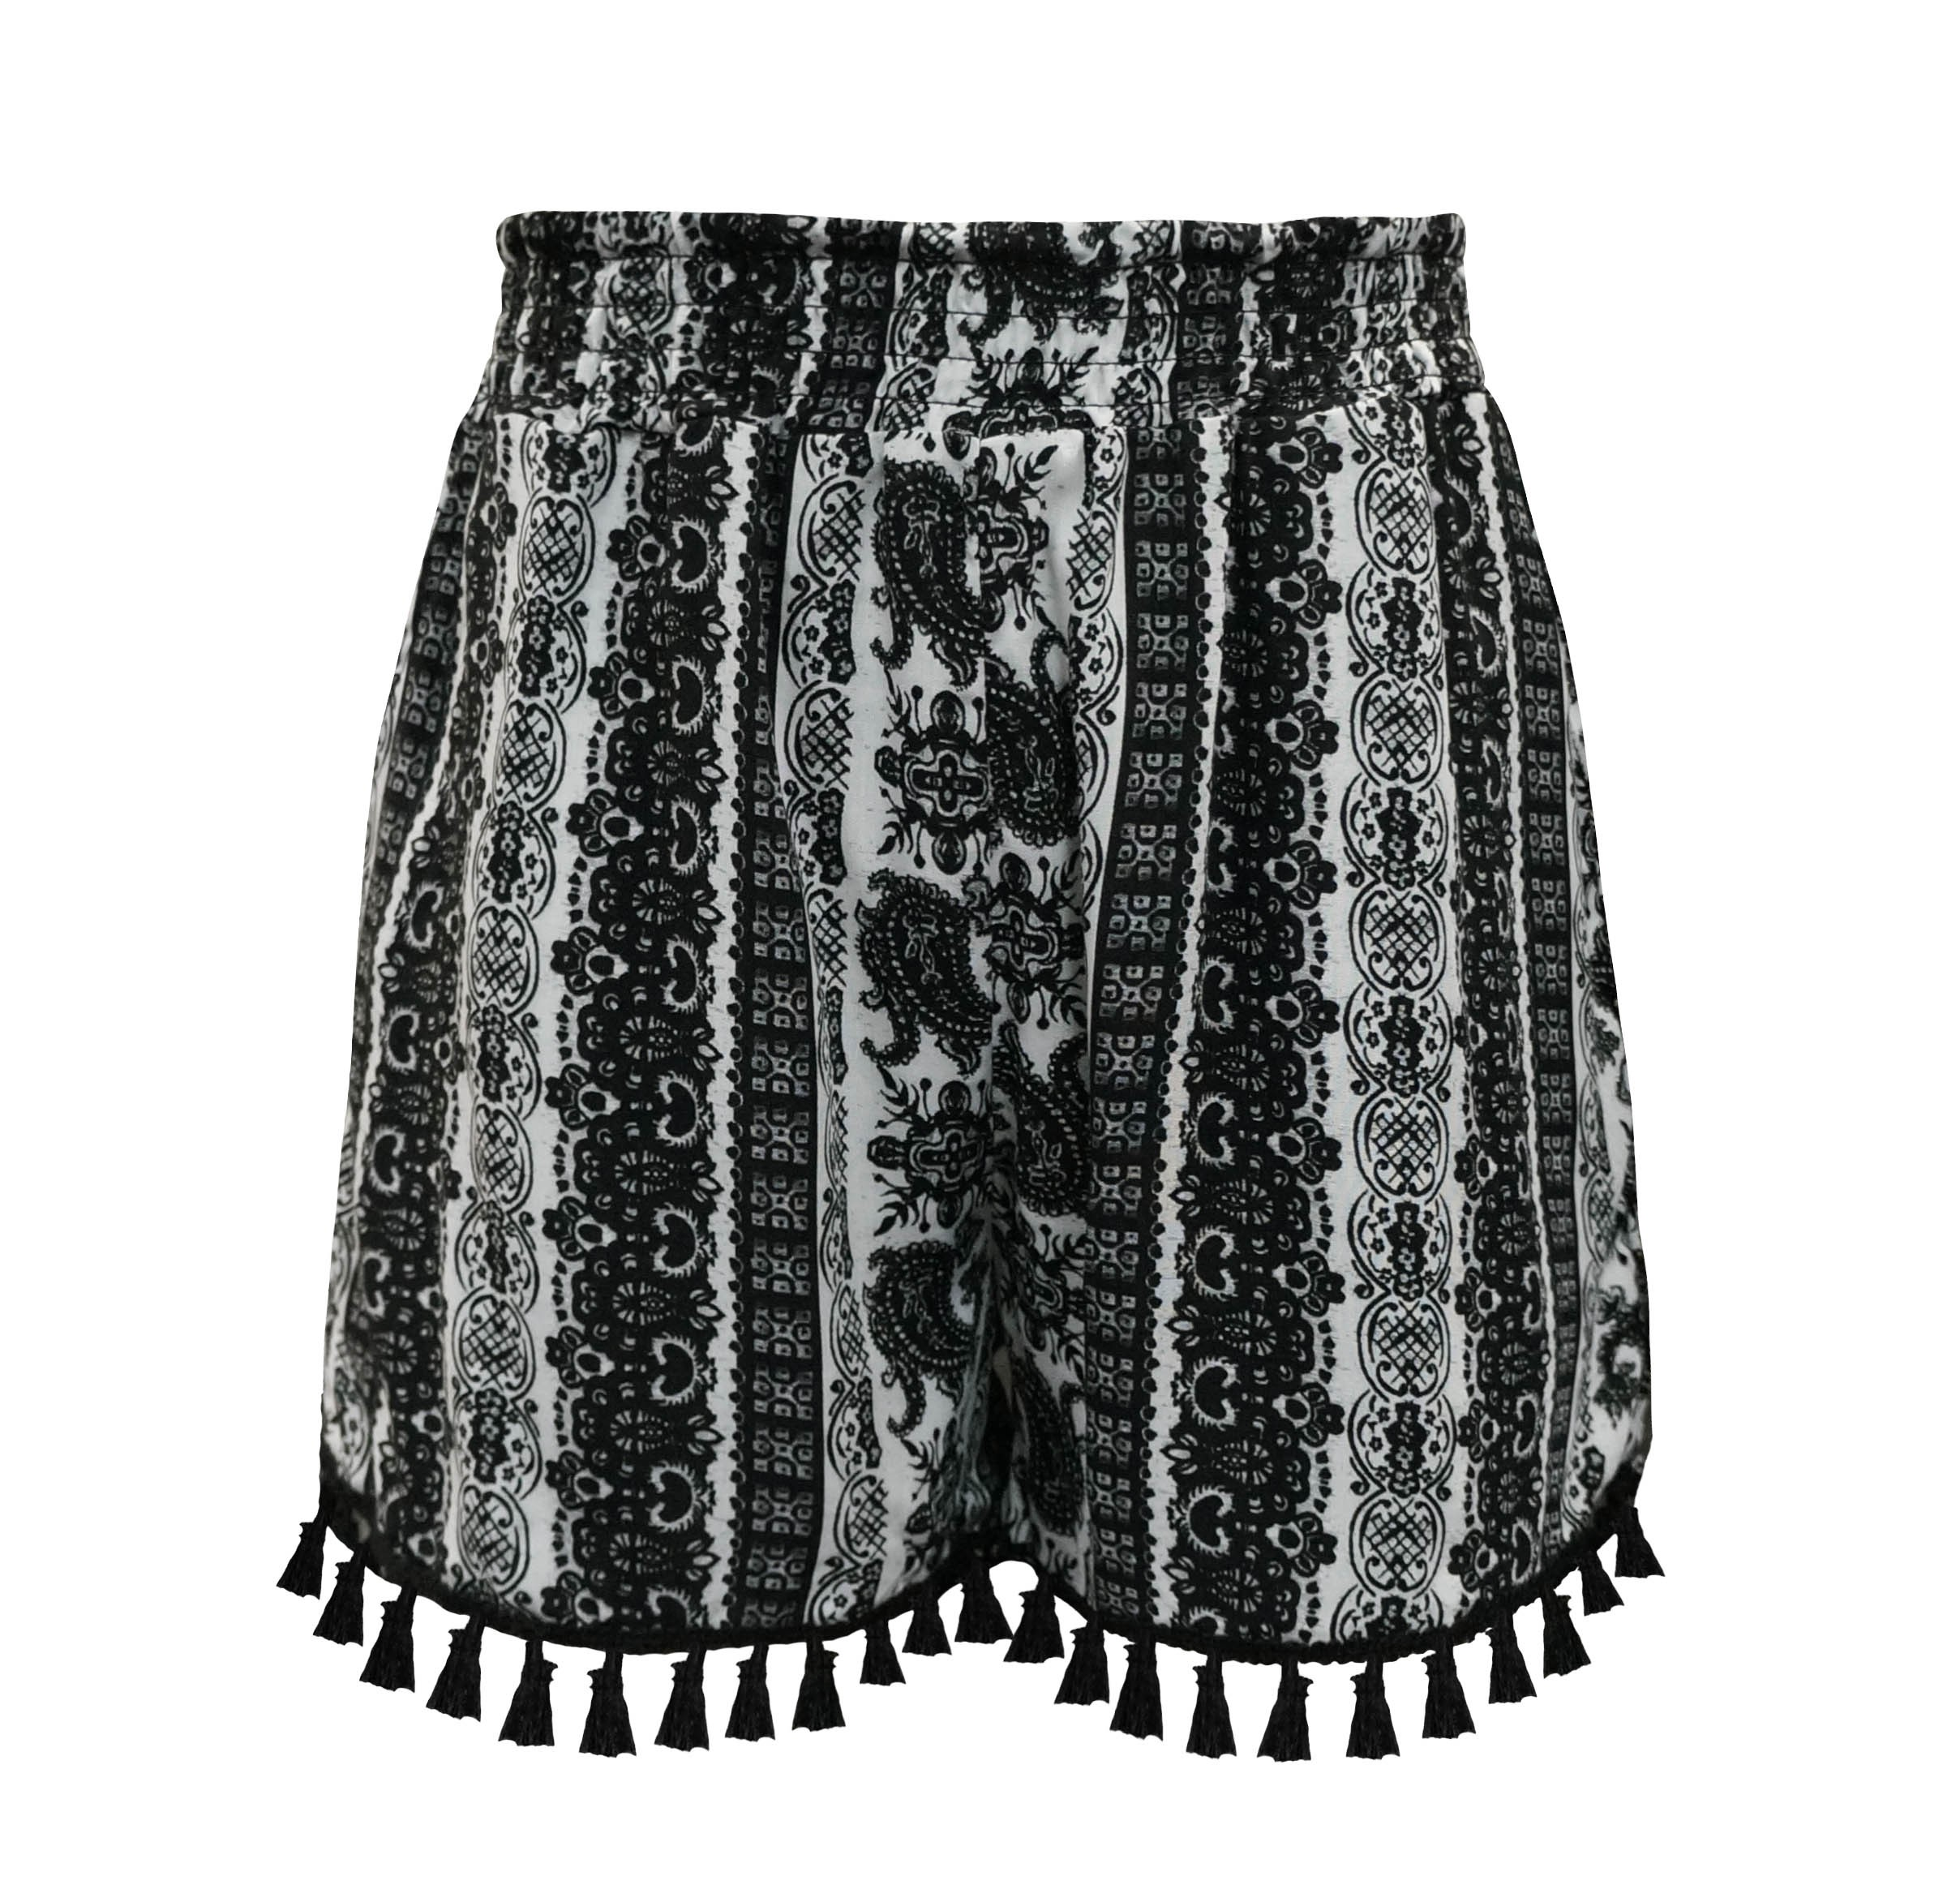 KIDS BLACK/WHITE PAISLEY PRINT SMOCKING WAIST SHORTS W/ TASSEL TRIM(7/8,10/12)#XK8SH15-05